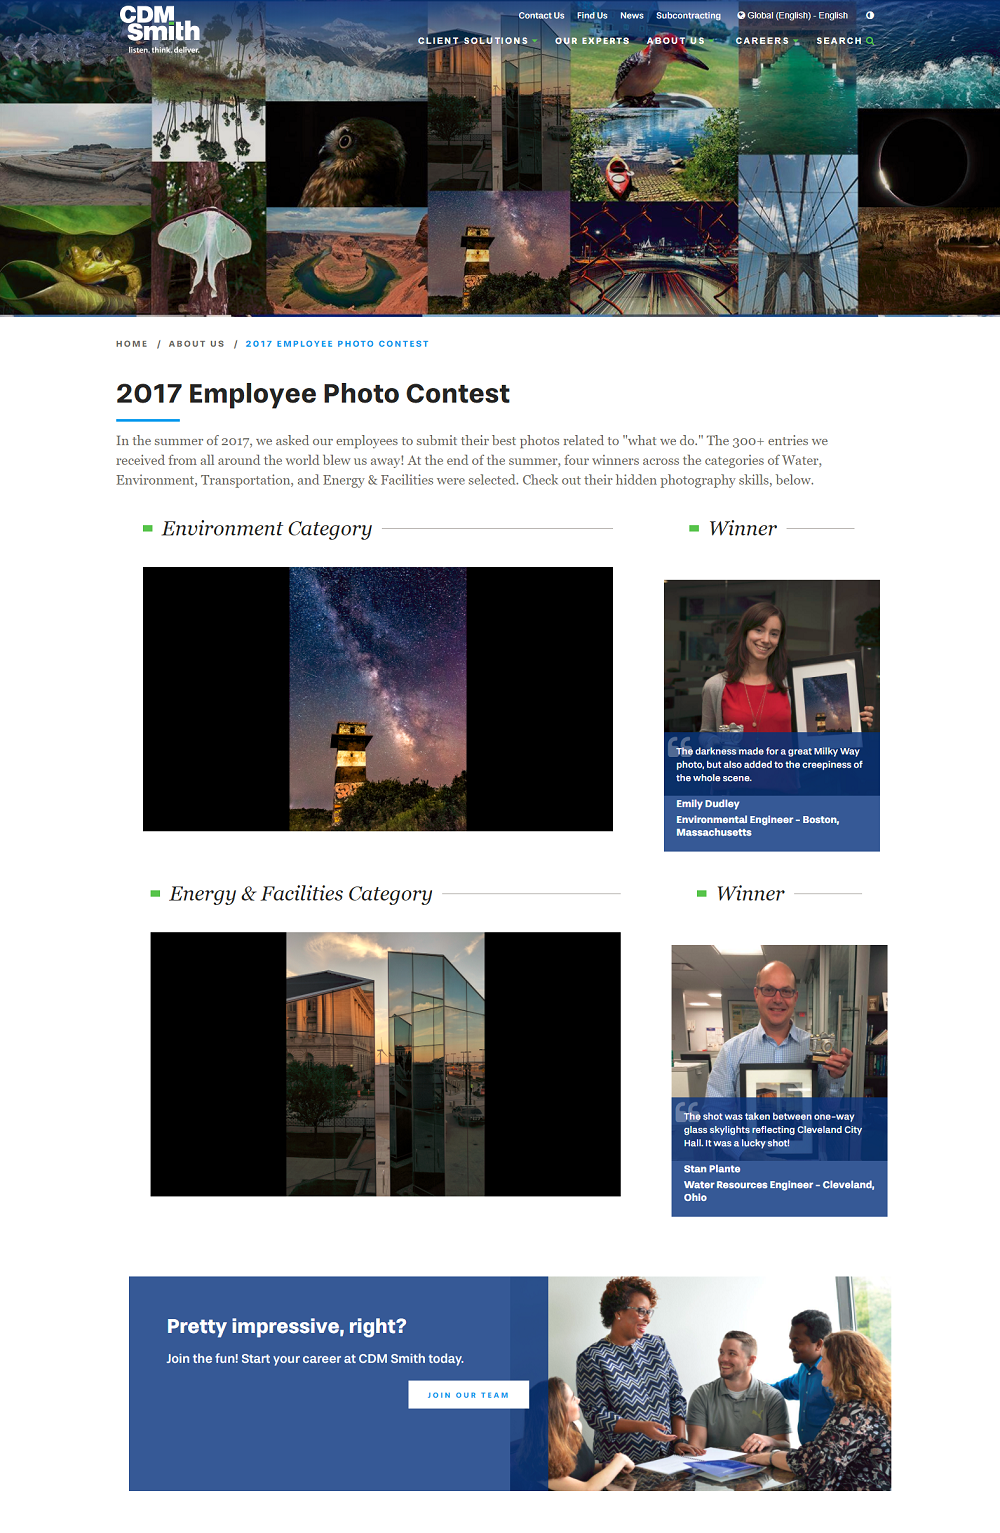 CDM Smith Employee Photo Contest